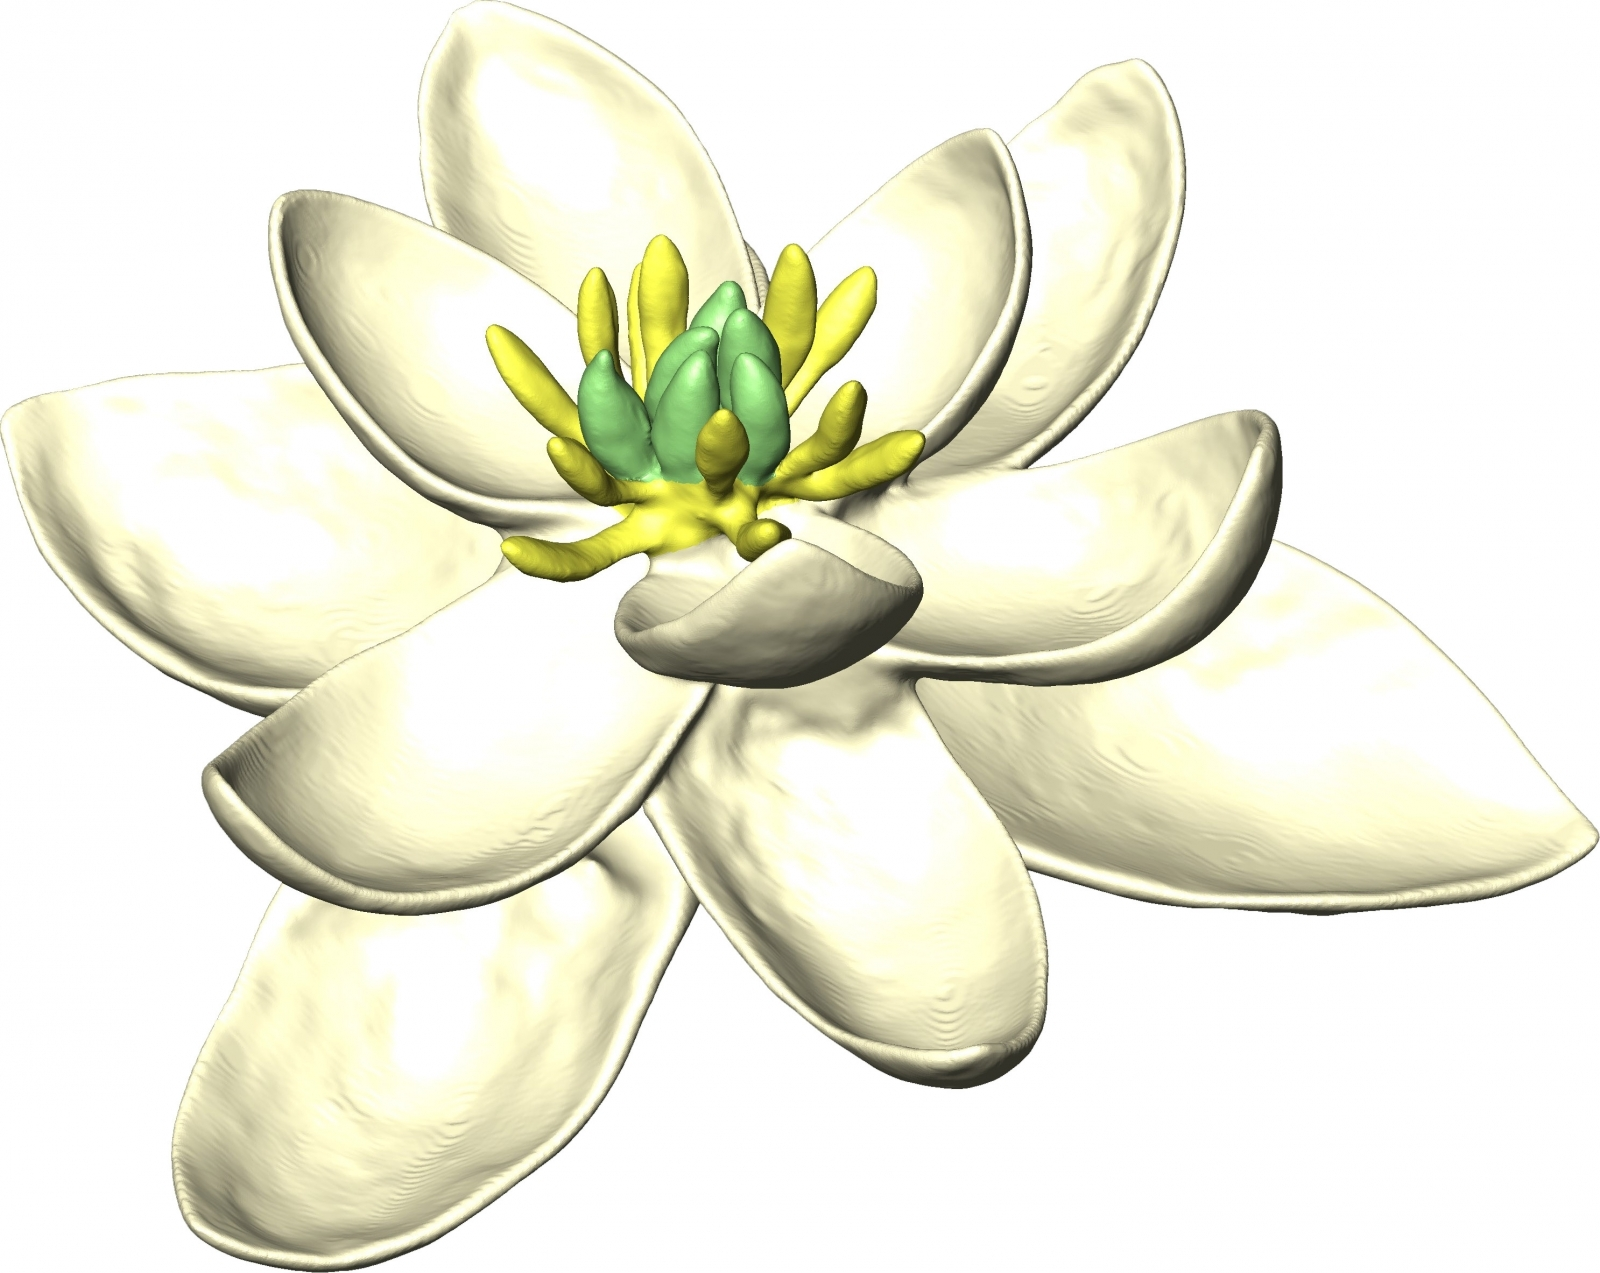 Scientists Reconstructed The Ancient Mother of All Flowers